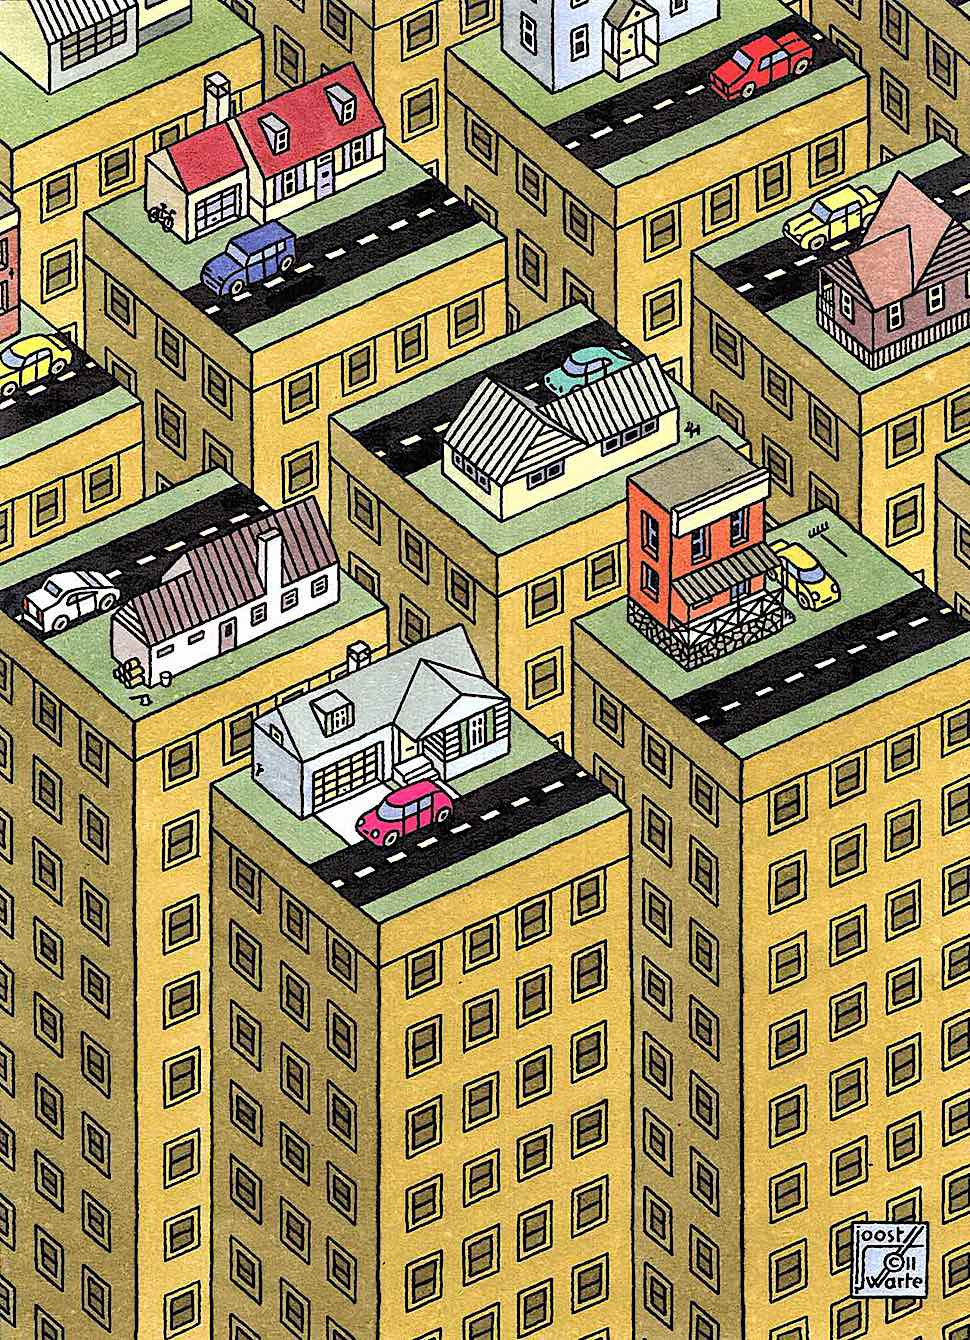 an illustration of urban living by Joost Swarte